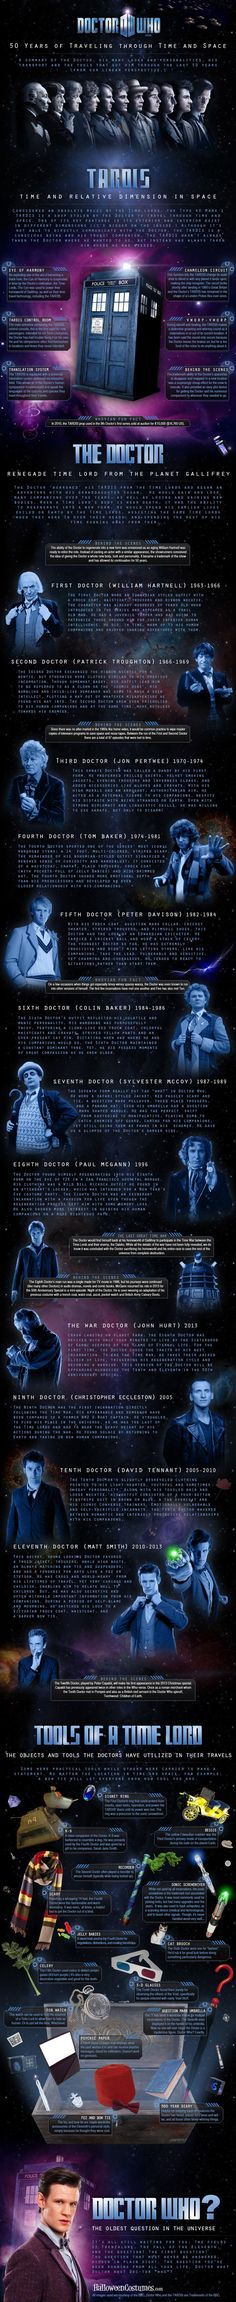 DOCTOR WHO Infographic - 50 Years of Traveling Through Time and Space